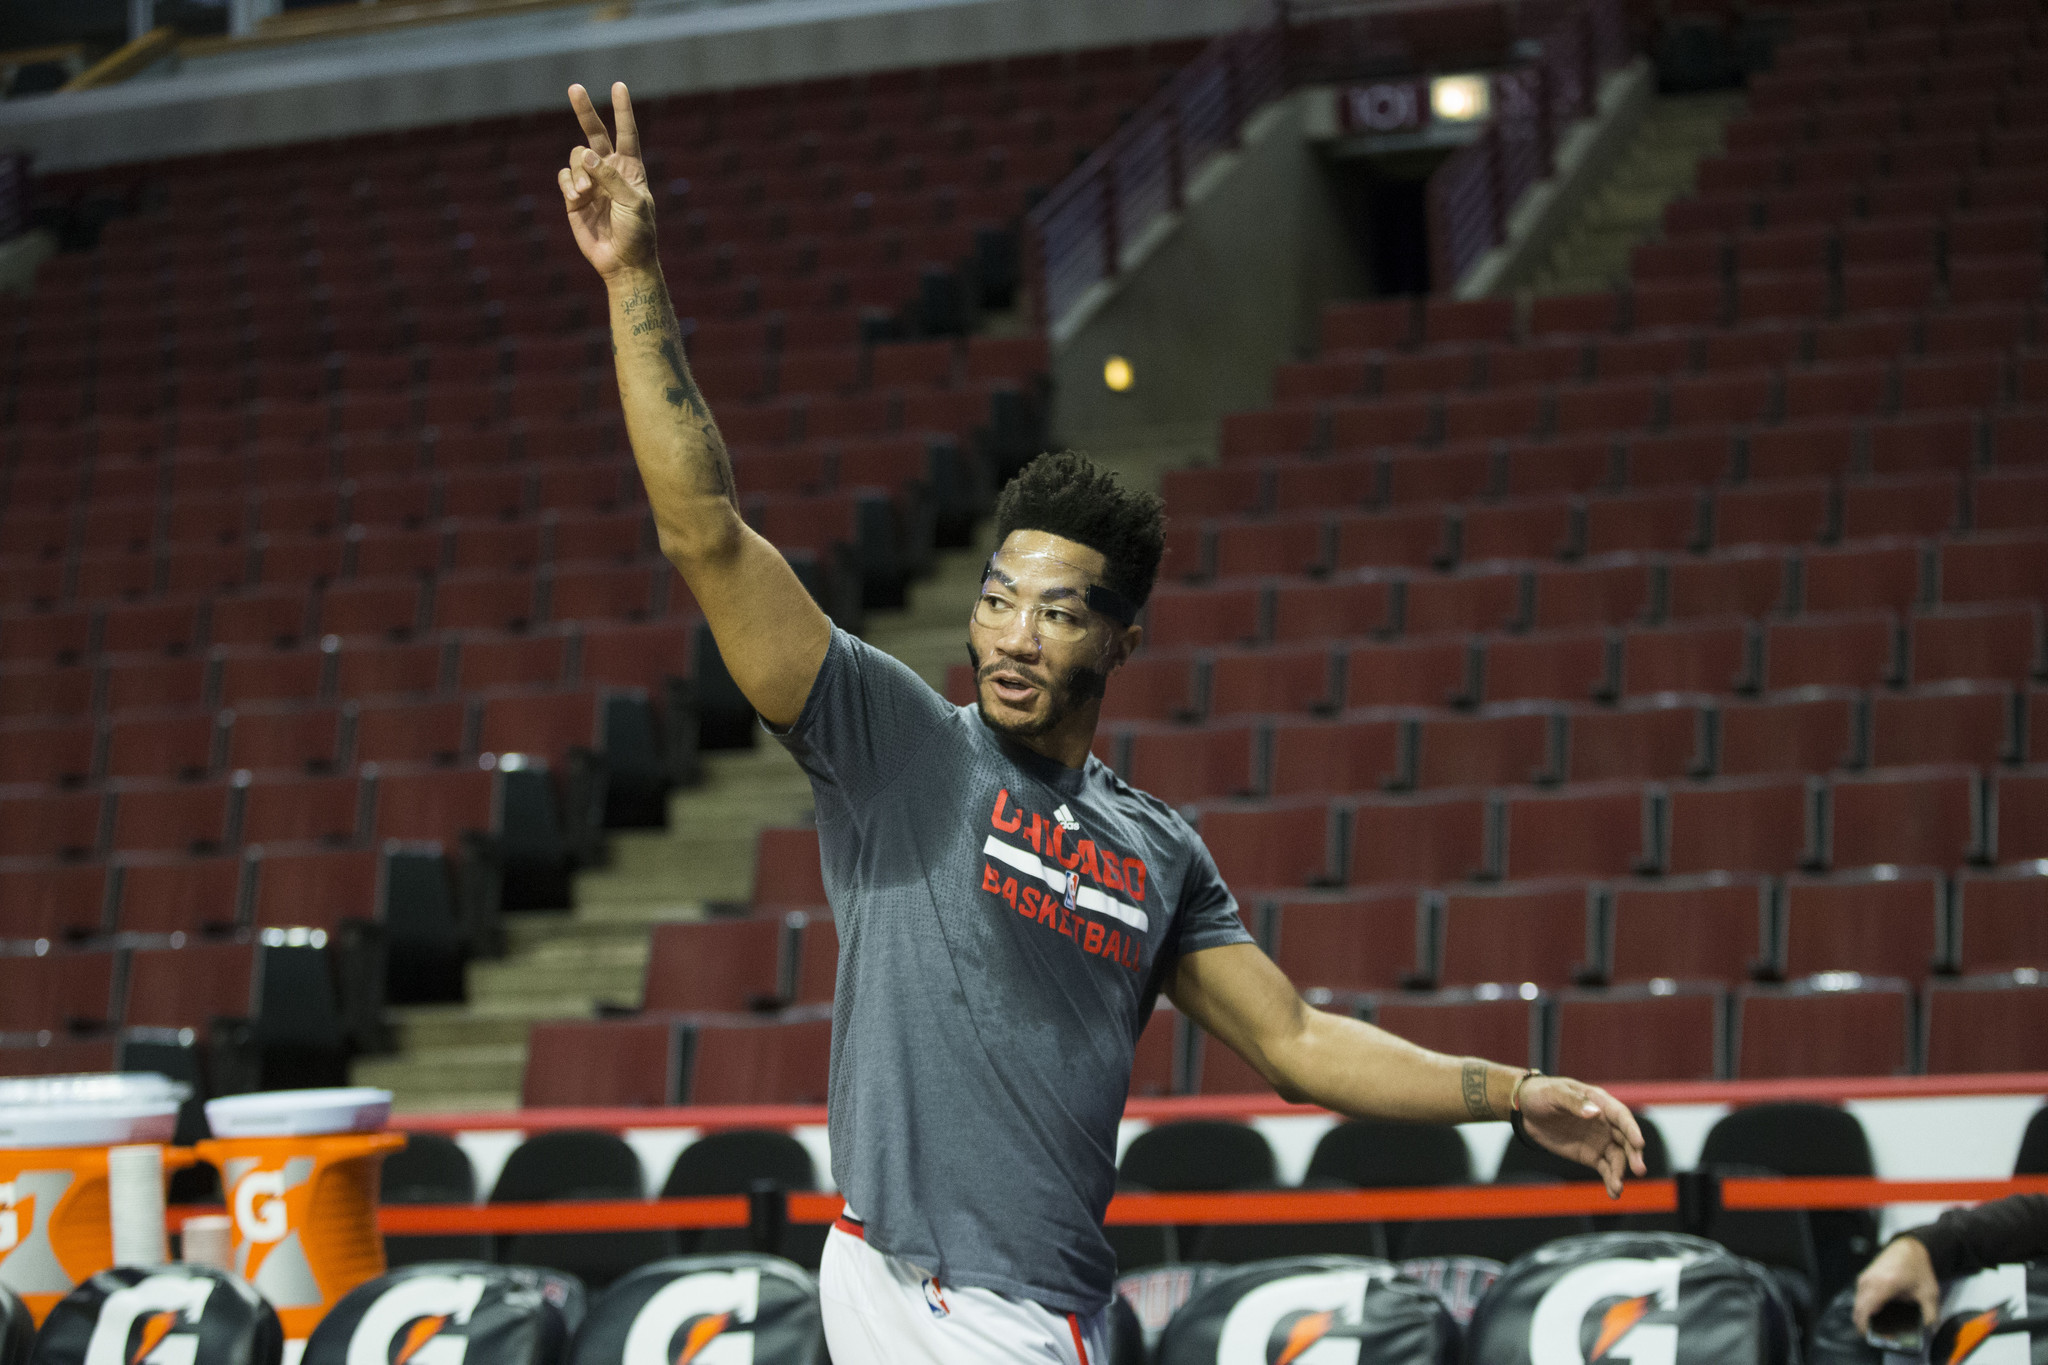 derrick rose adidas contract brother